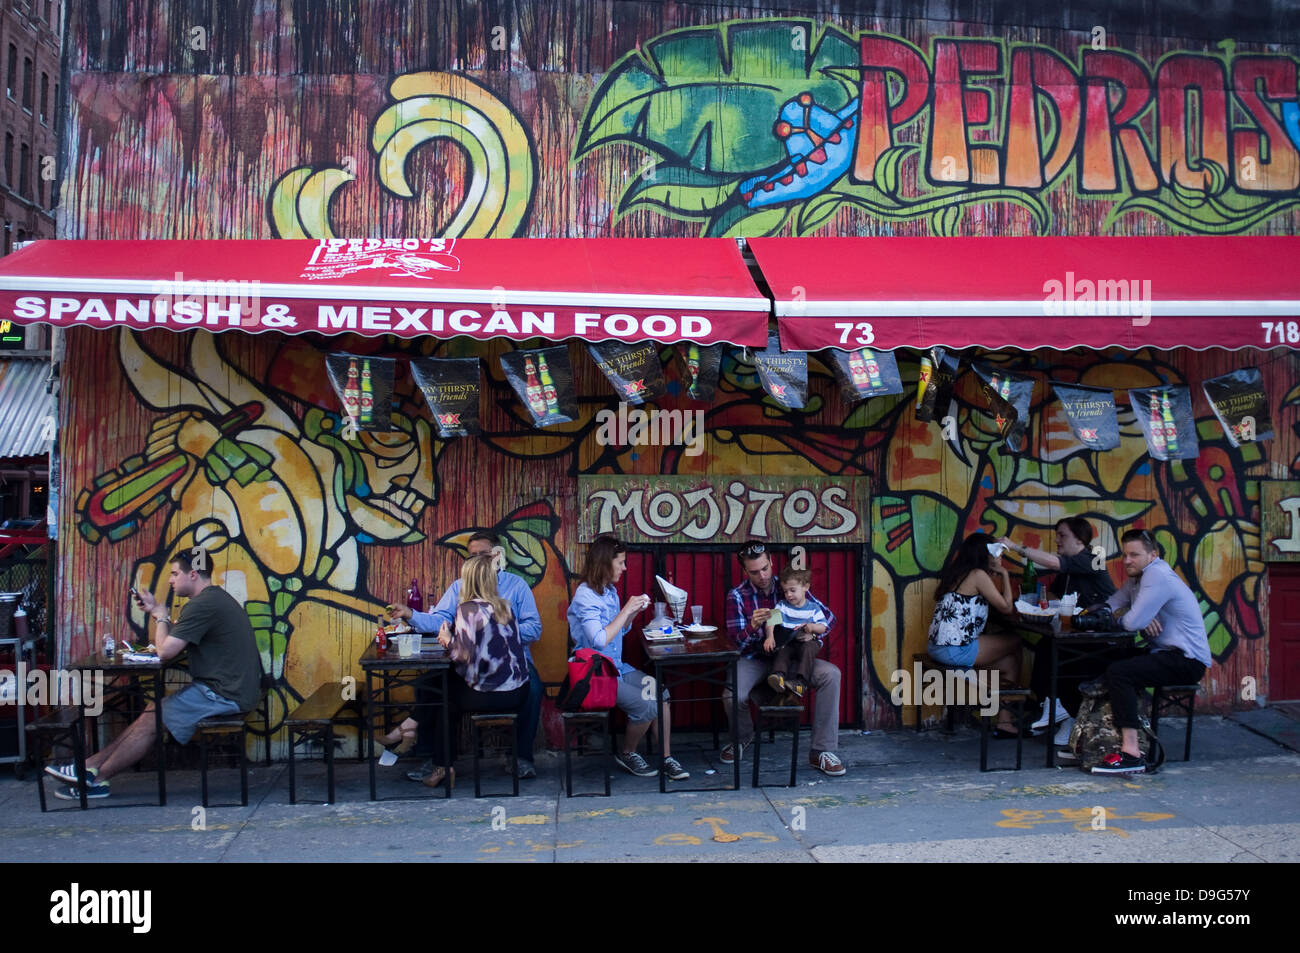 Mexican Restaurant Pedros In Dumbo Area Brooklyn New York